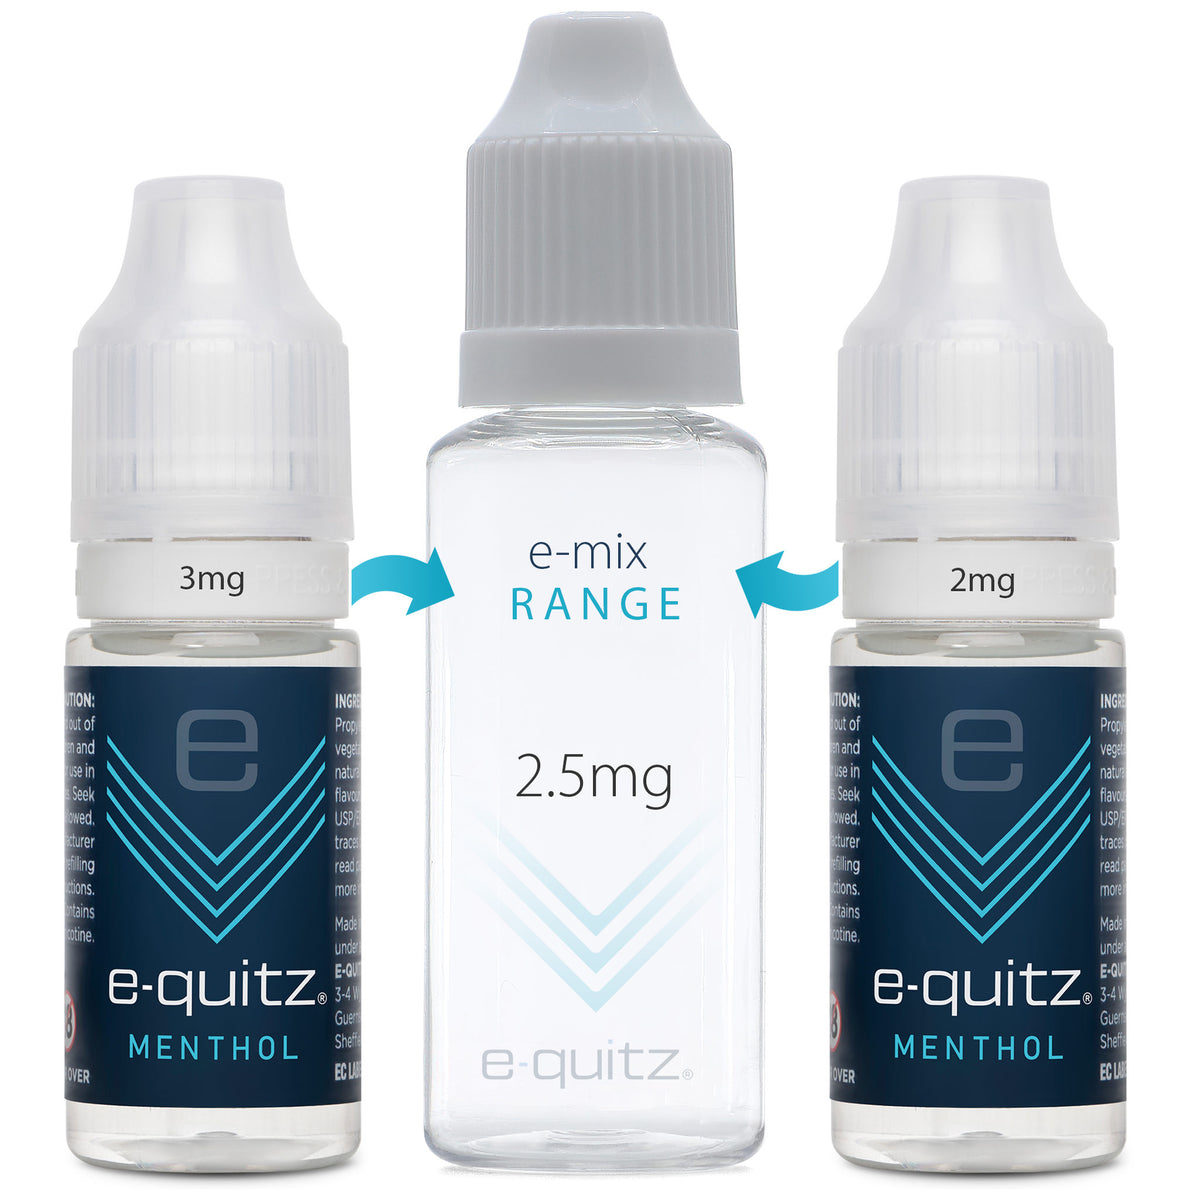 e-quitz 2.5mg menthol e-mix